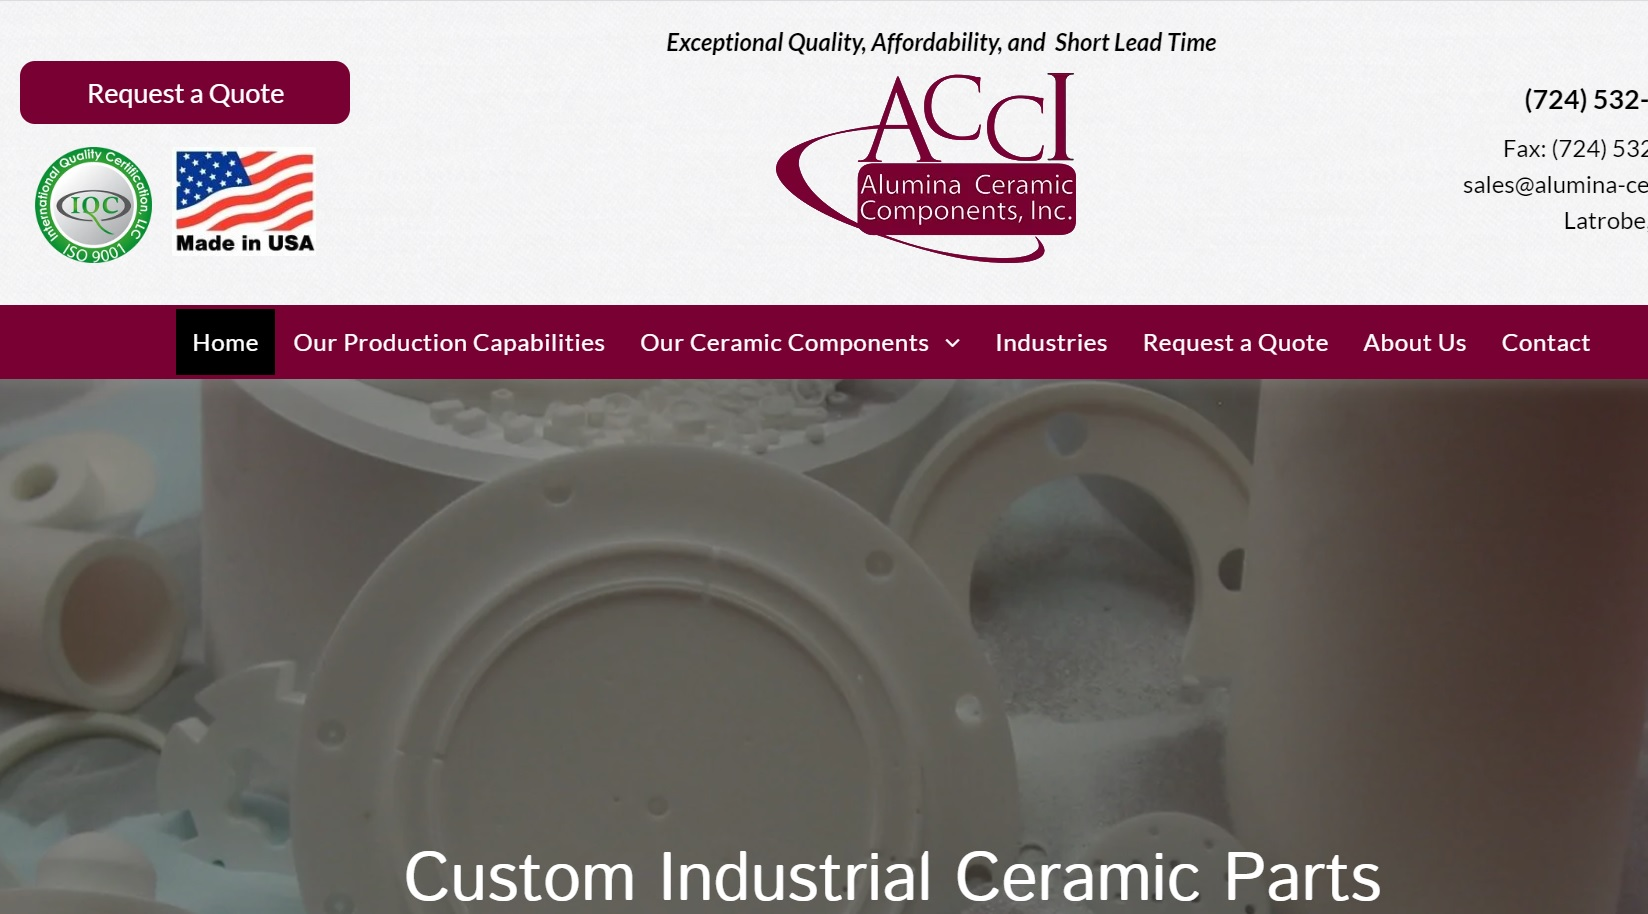 Alumina Ceramic Components, Inc.